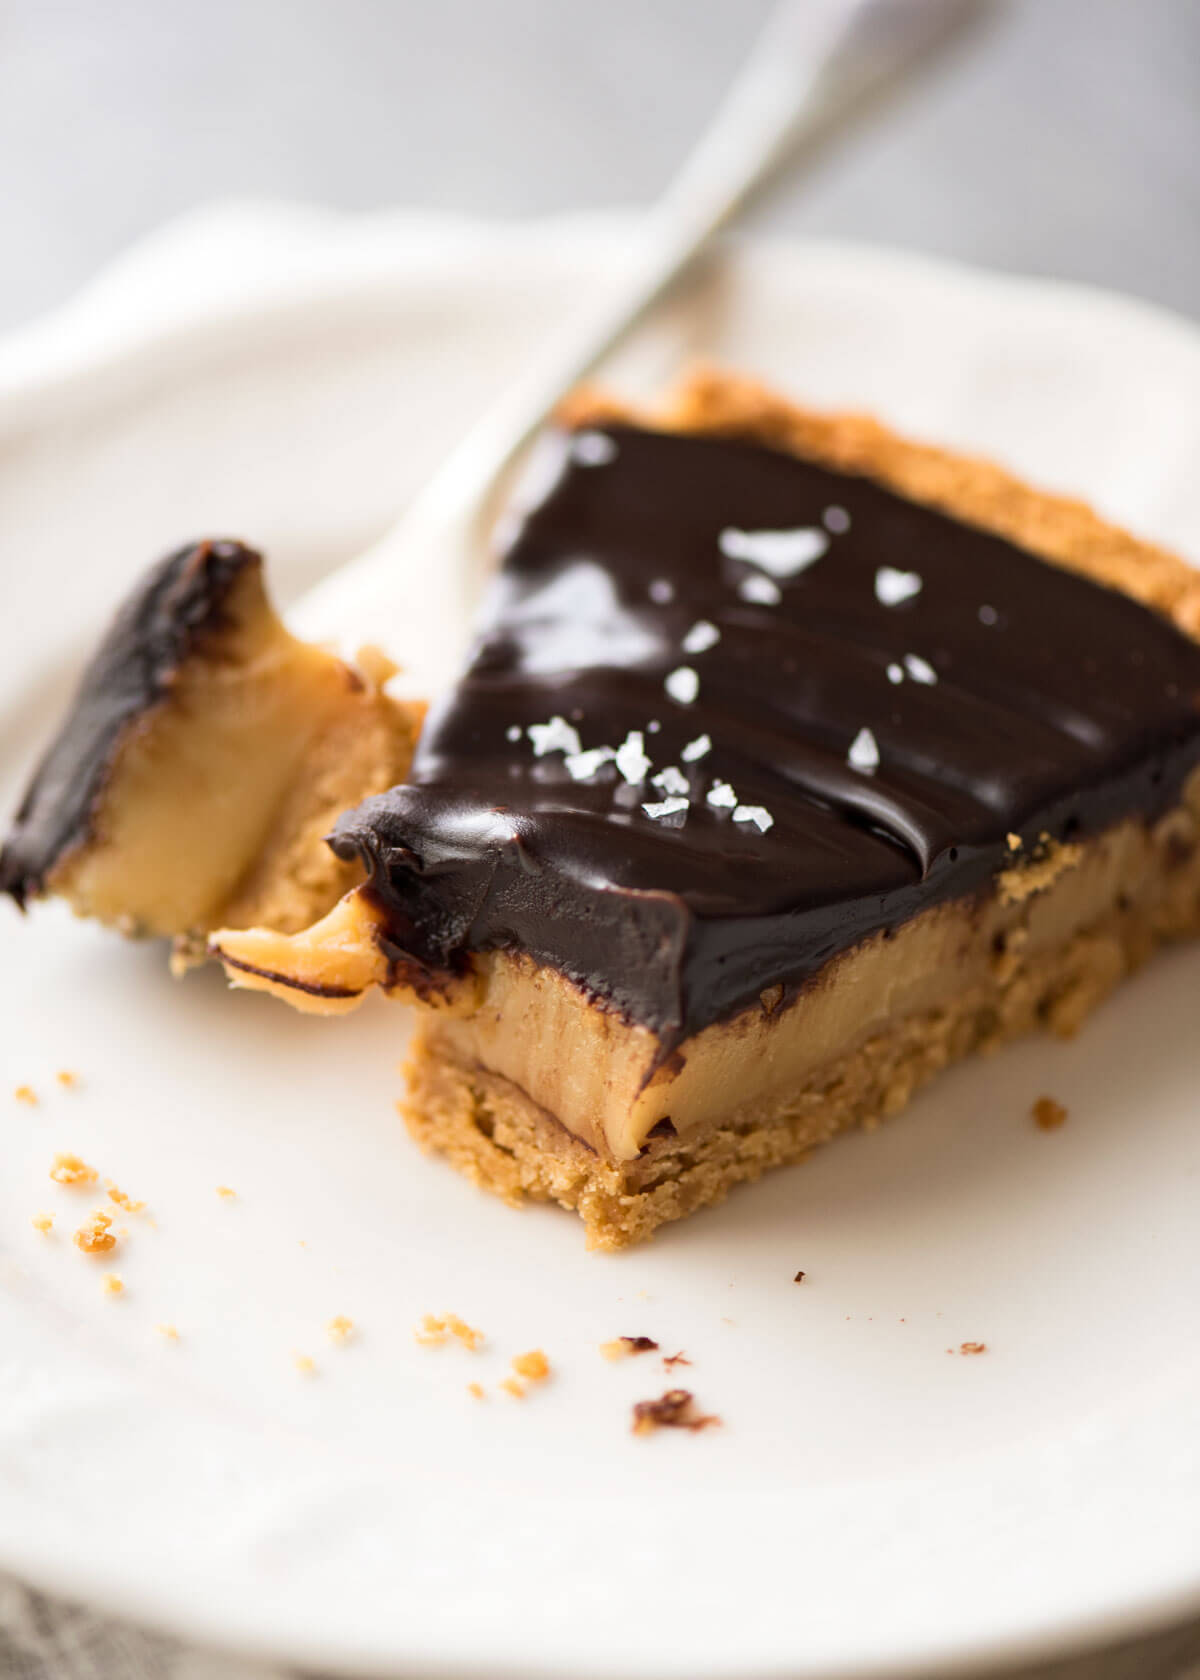 Salted Caramel Tart | RecipeTin Eats